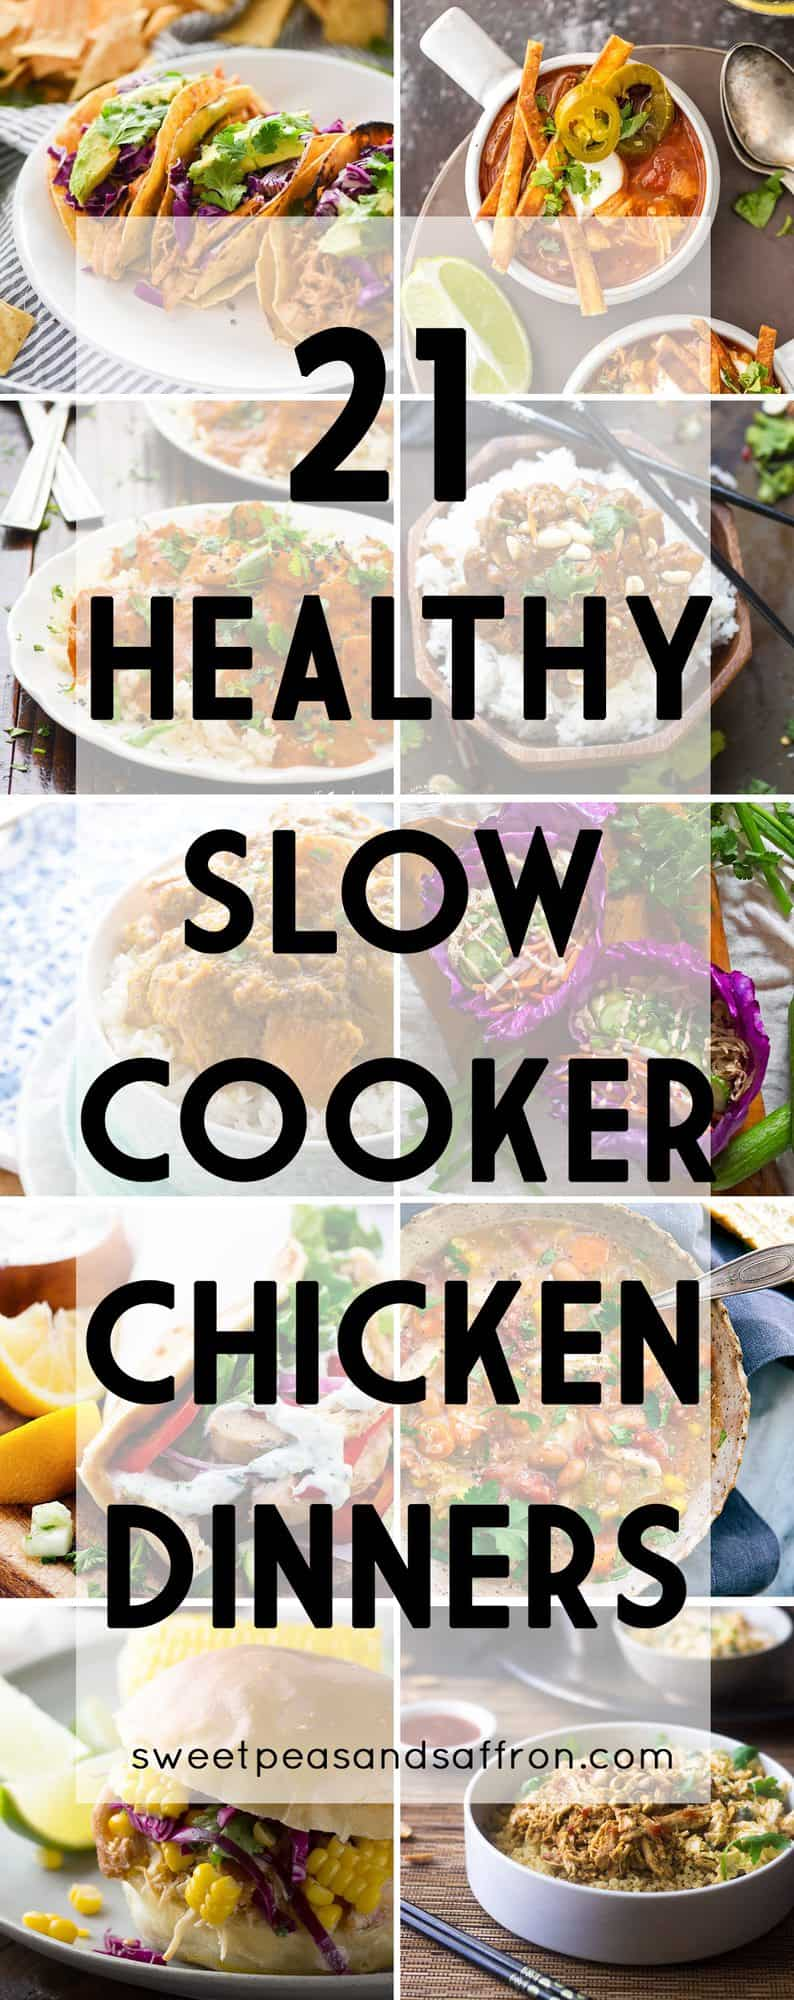 29 Delicious and Healthy Slow-Cooker Recipes (Healthy and Fit)